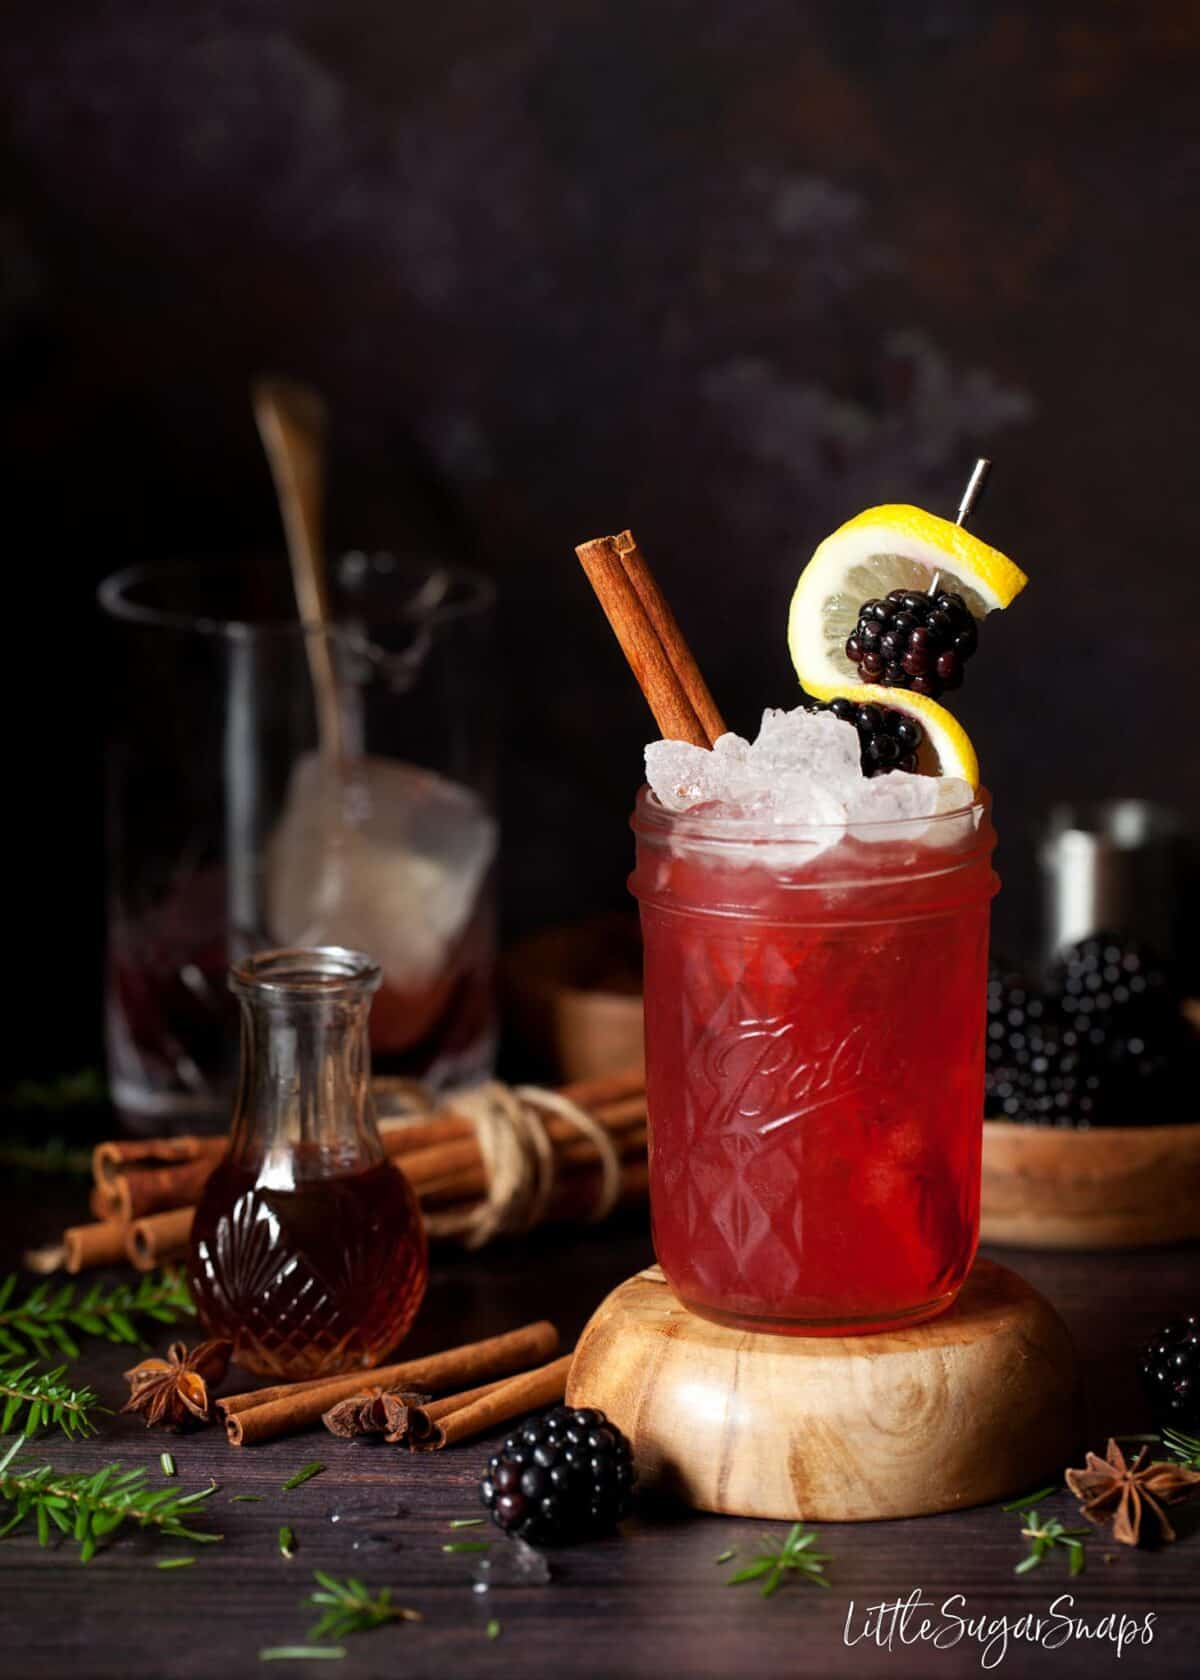 The Bramble Cocktail recipe decorated with lemon and blackberries with a cinnamon stick.